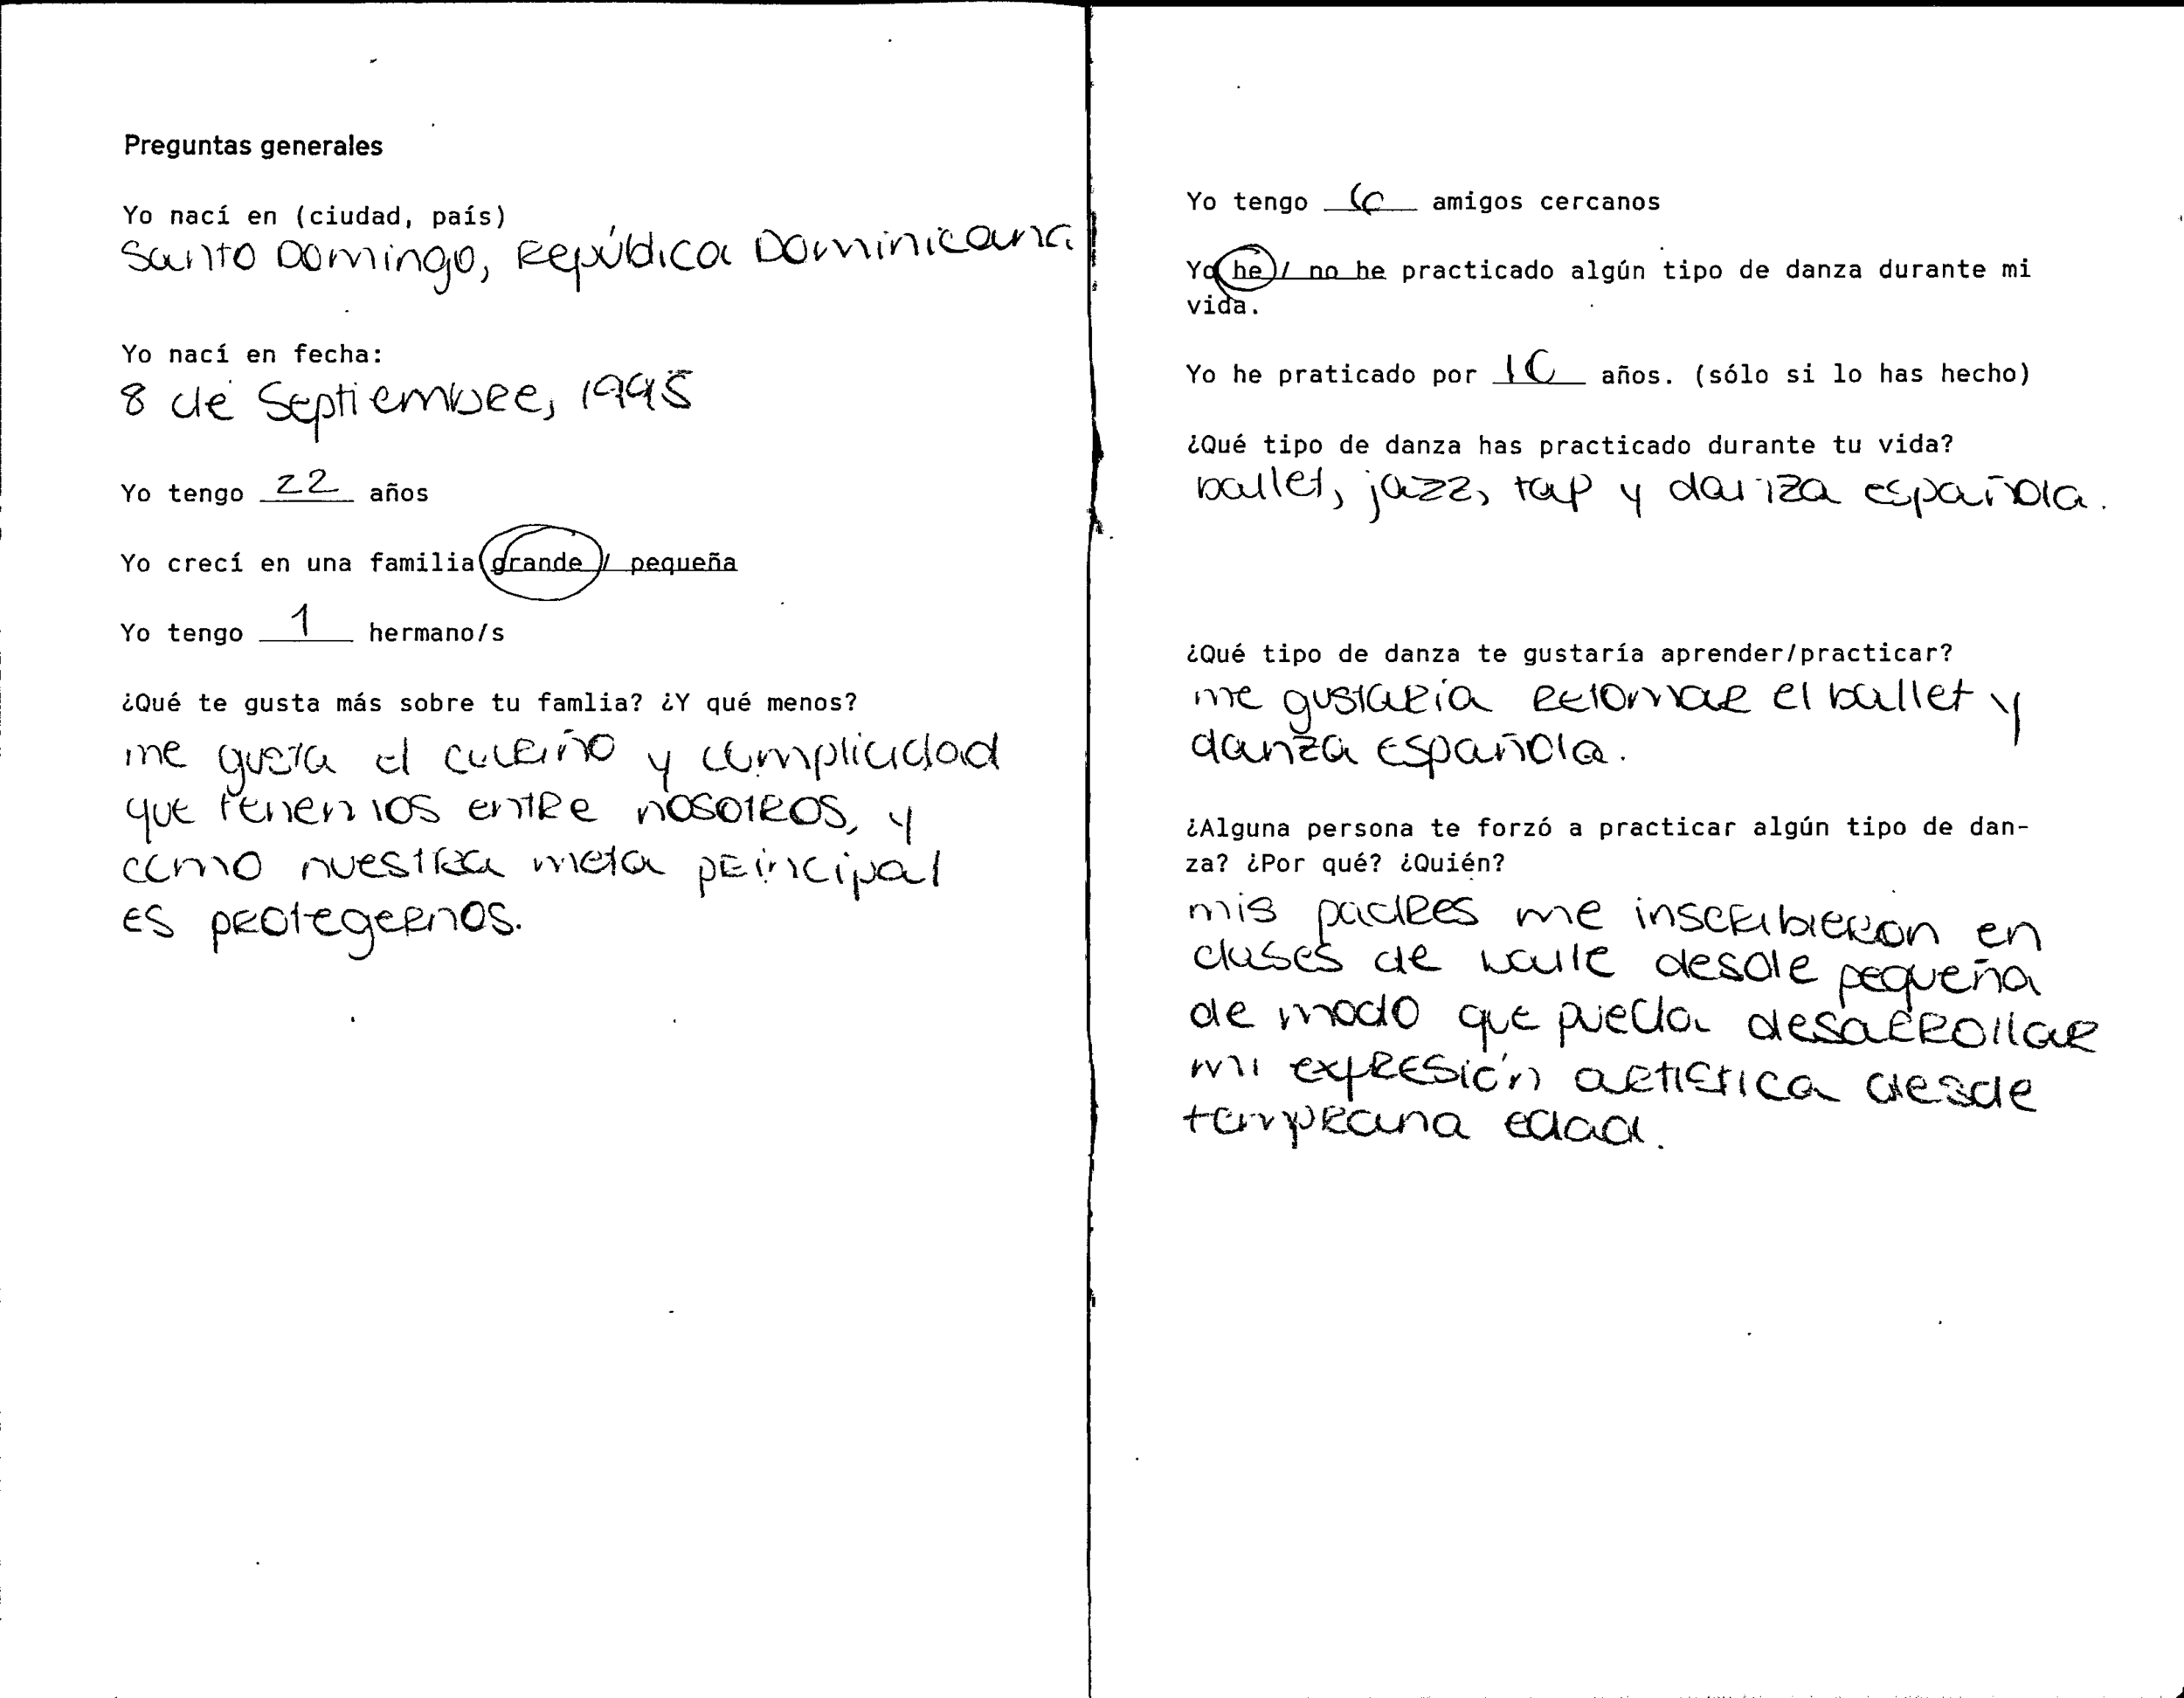 mamey_Page_065.png